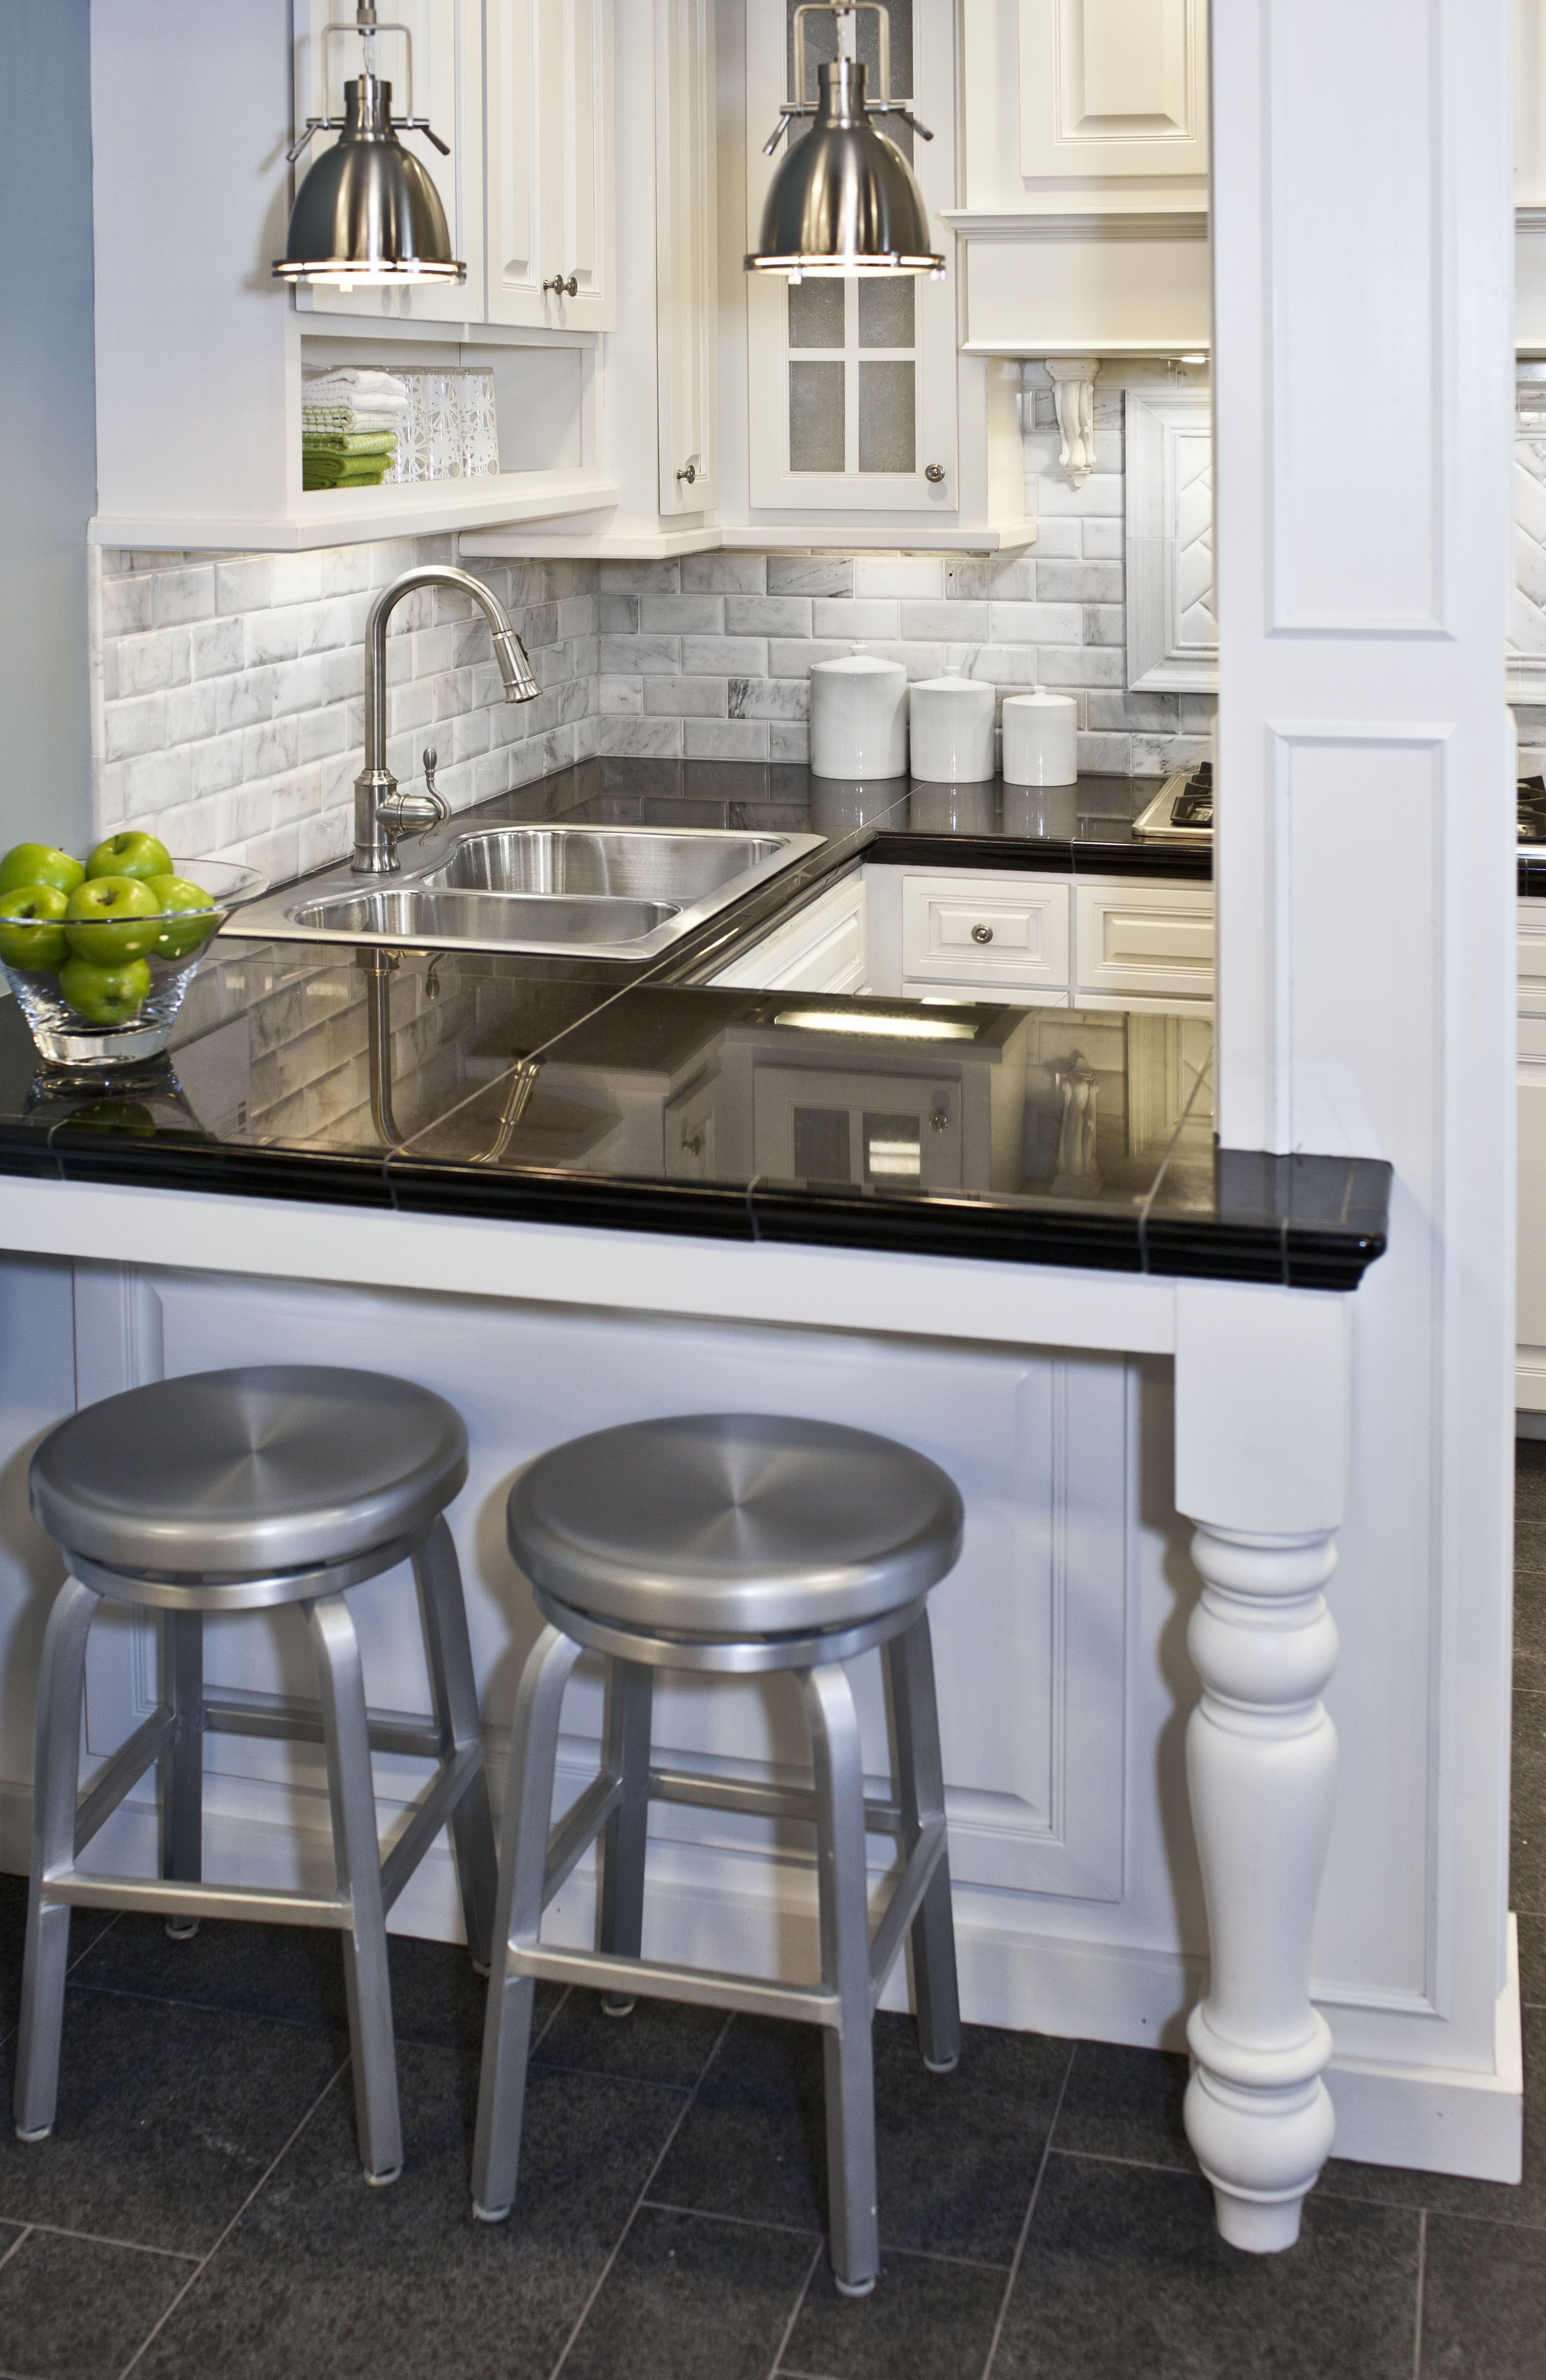 You can't go wrong with a classic black and white kitchen